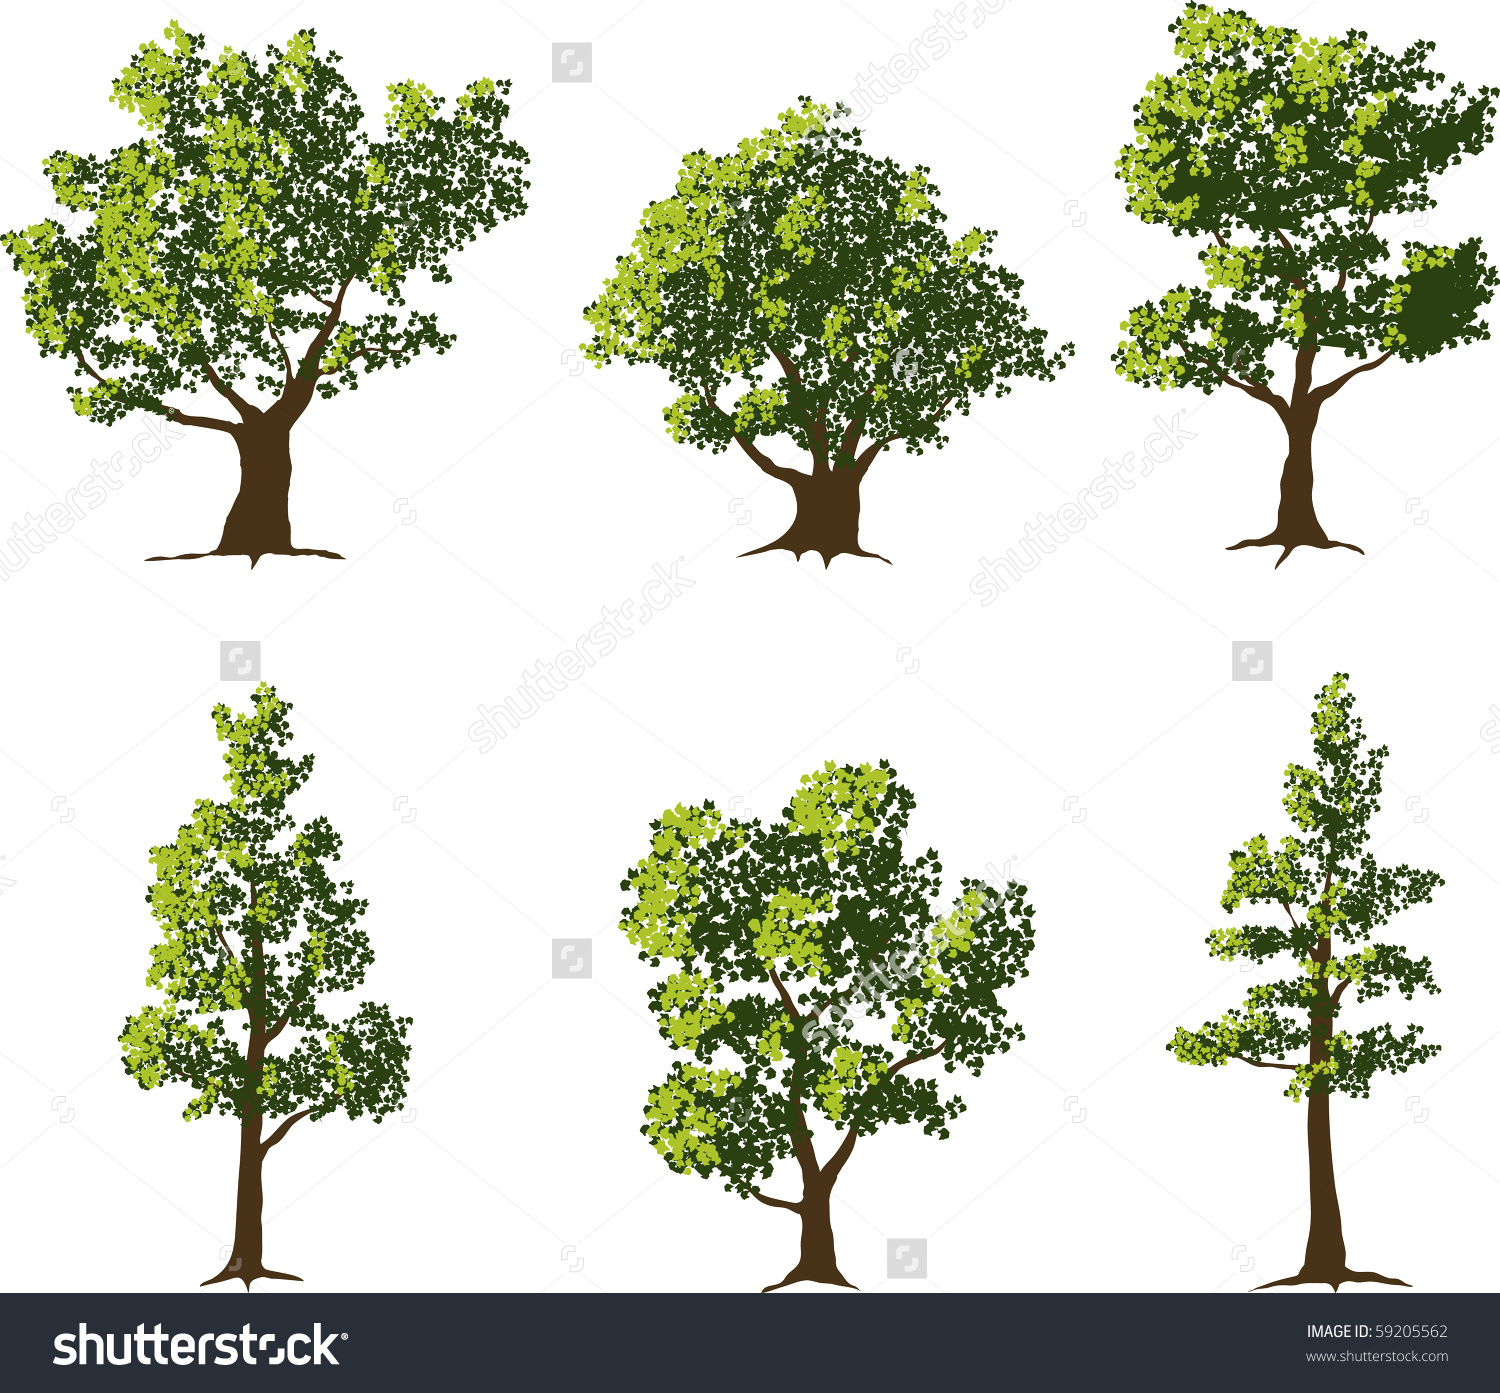 Collection Six Fully Grown Shade Trees Stock Vector 59205562.